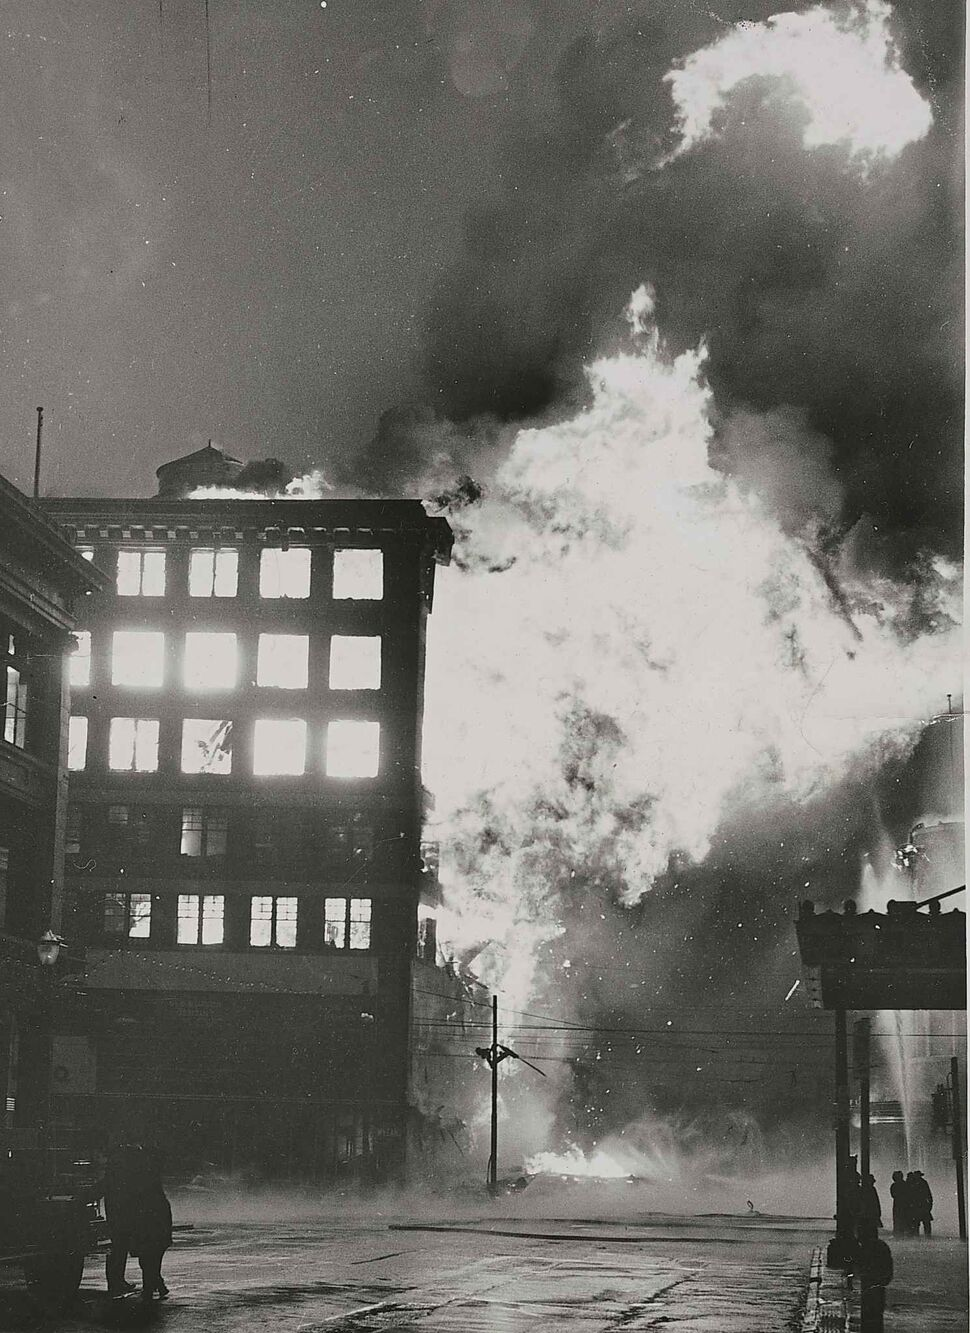 WINNIPEG FREE PRESS FILES</p><p>The Time Building at 6:20 a.m. on June 8, 1954.</p>